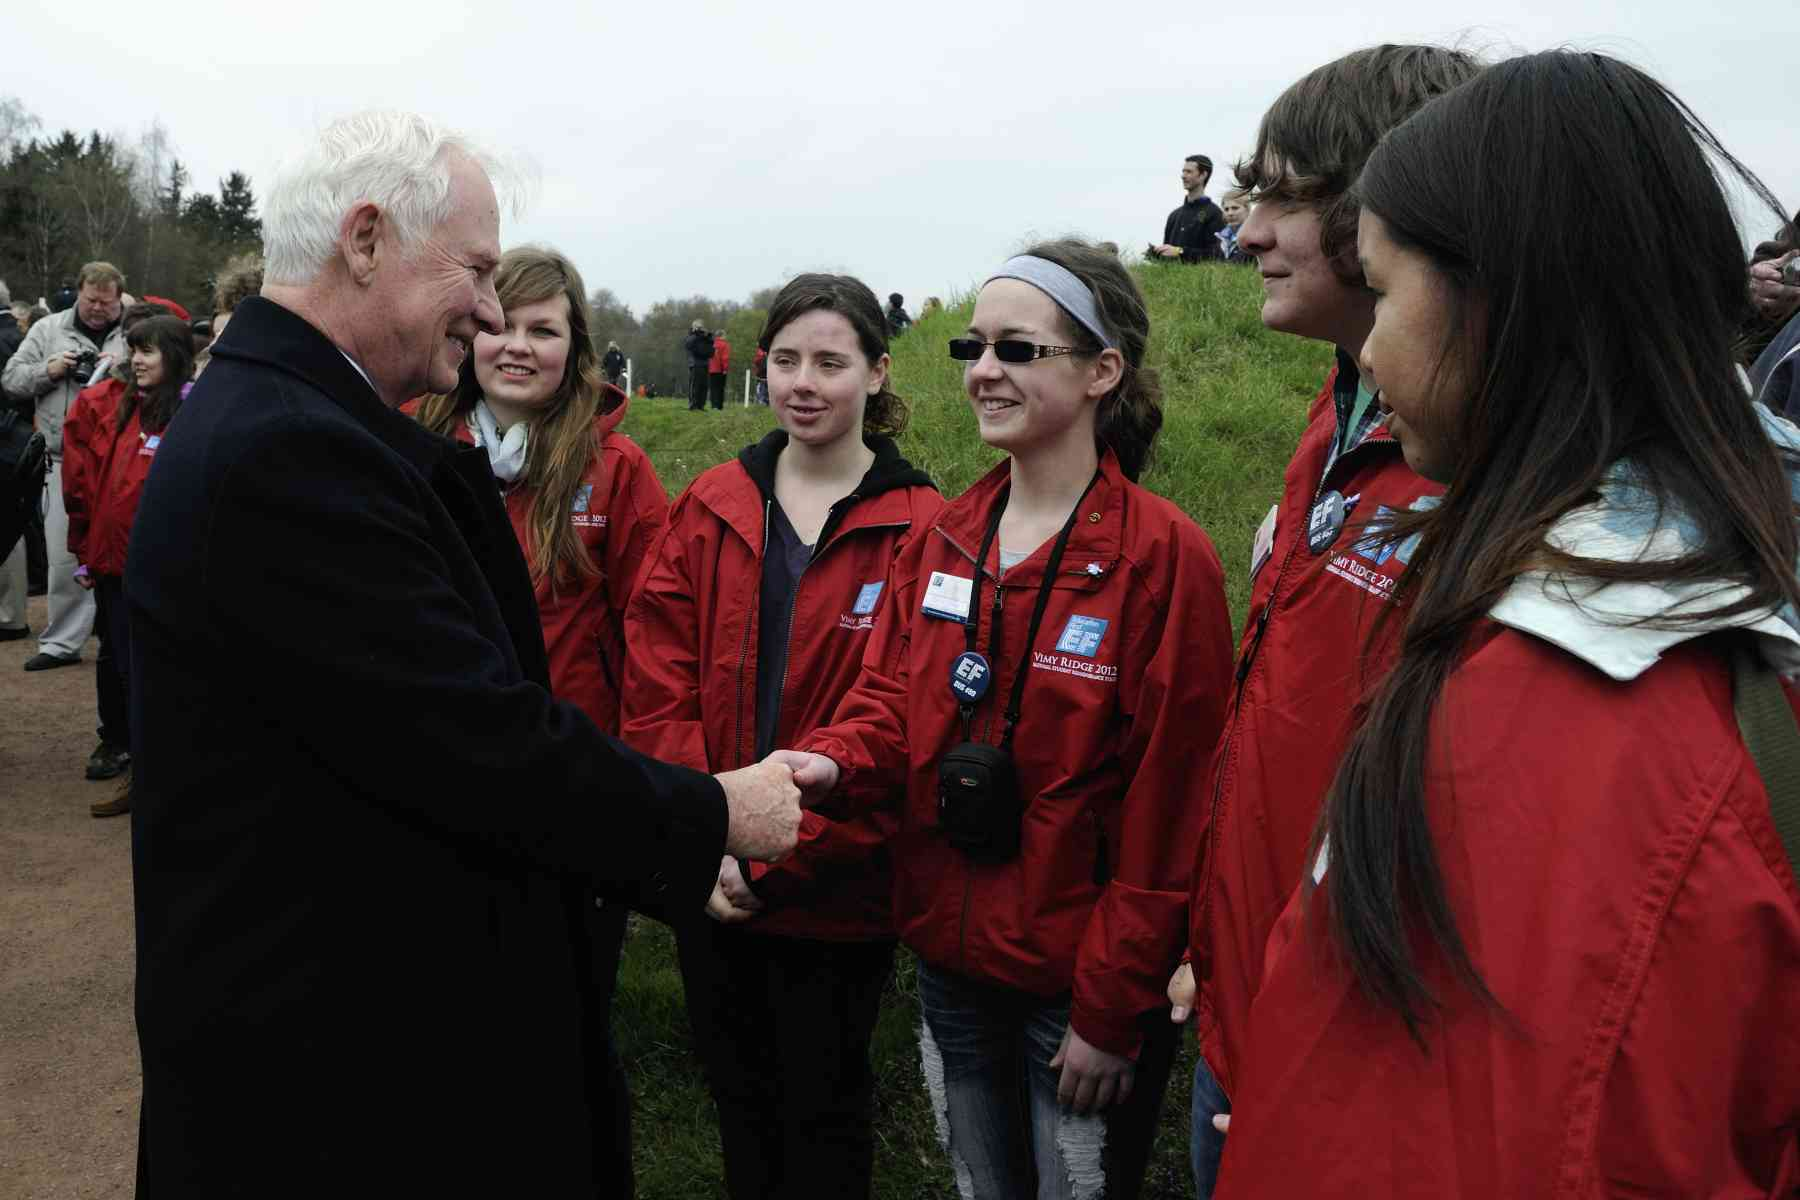 His Excellency met many of the young Canadians that were there.